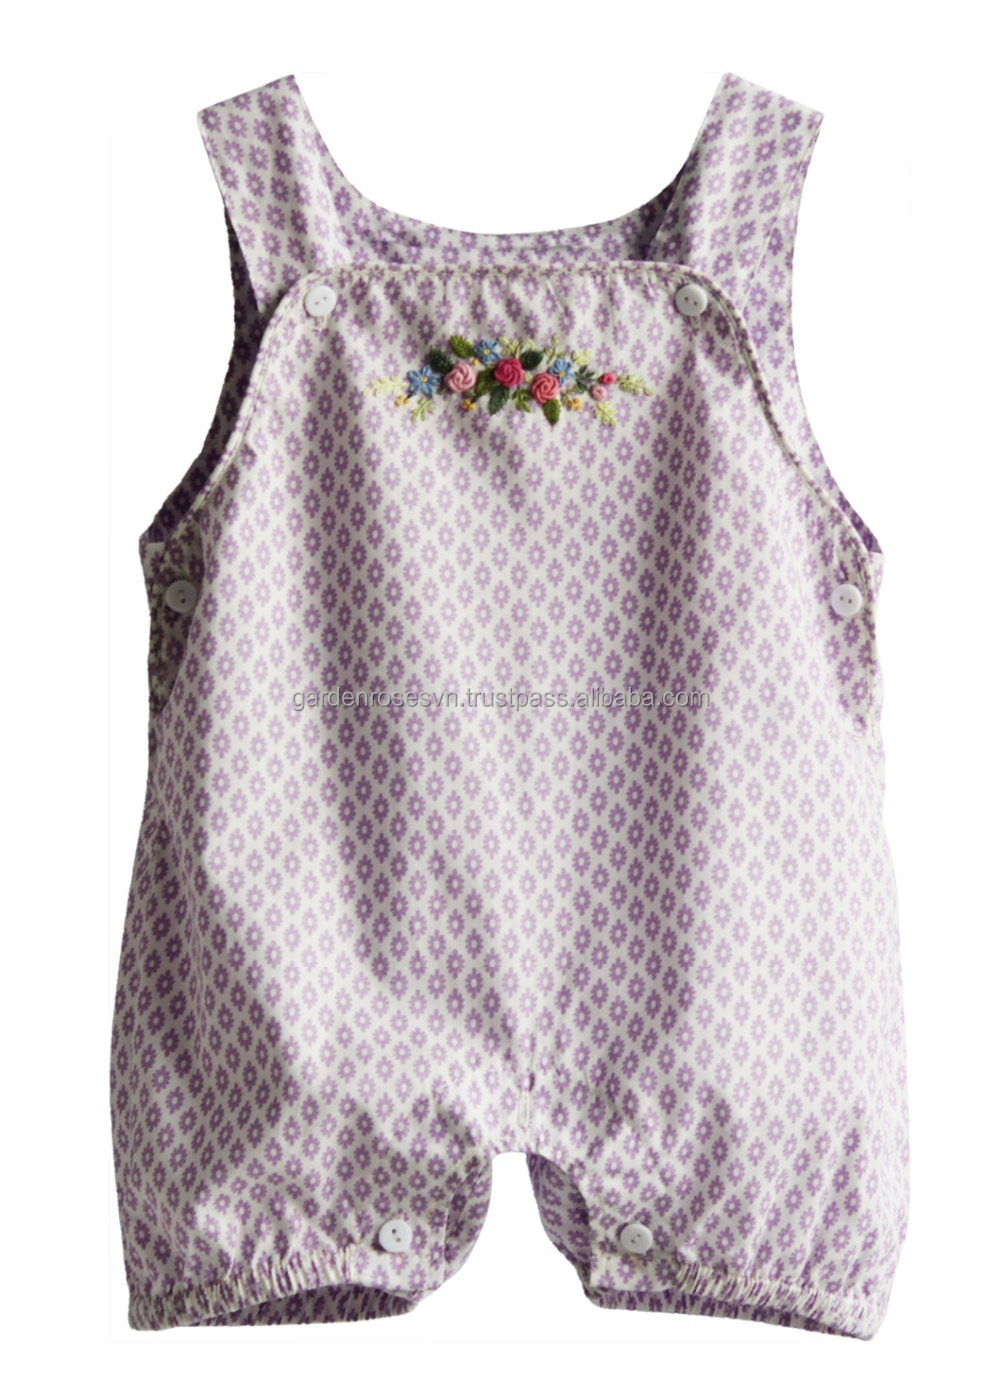 Gorgeous hand embroidered baby girl romper 100% cotton poplin